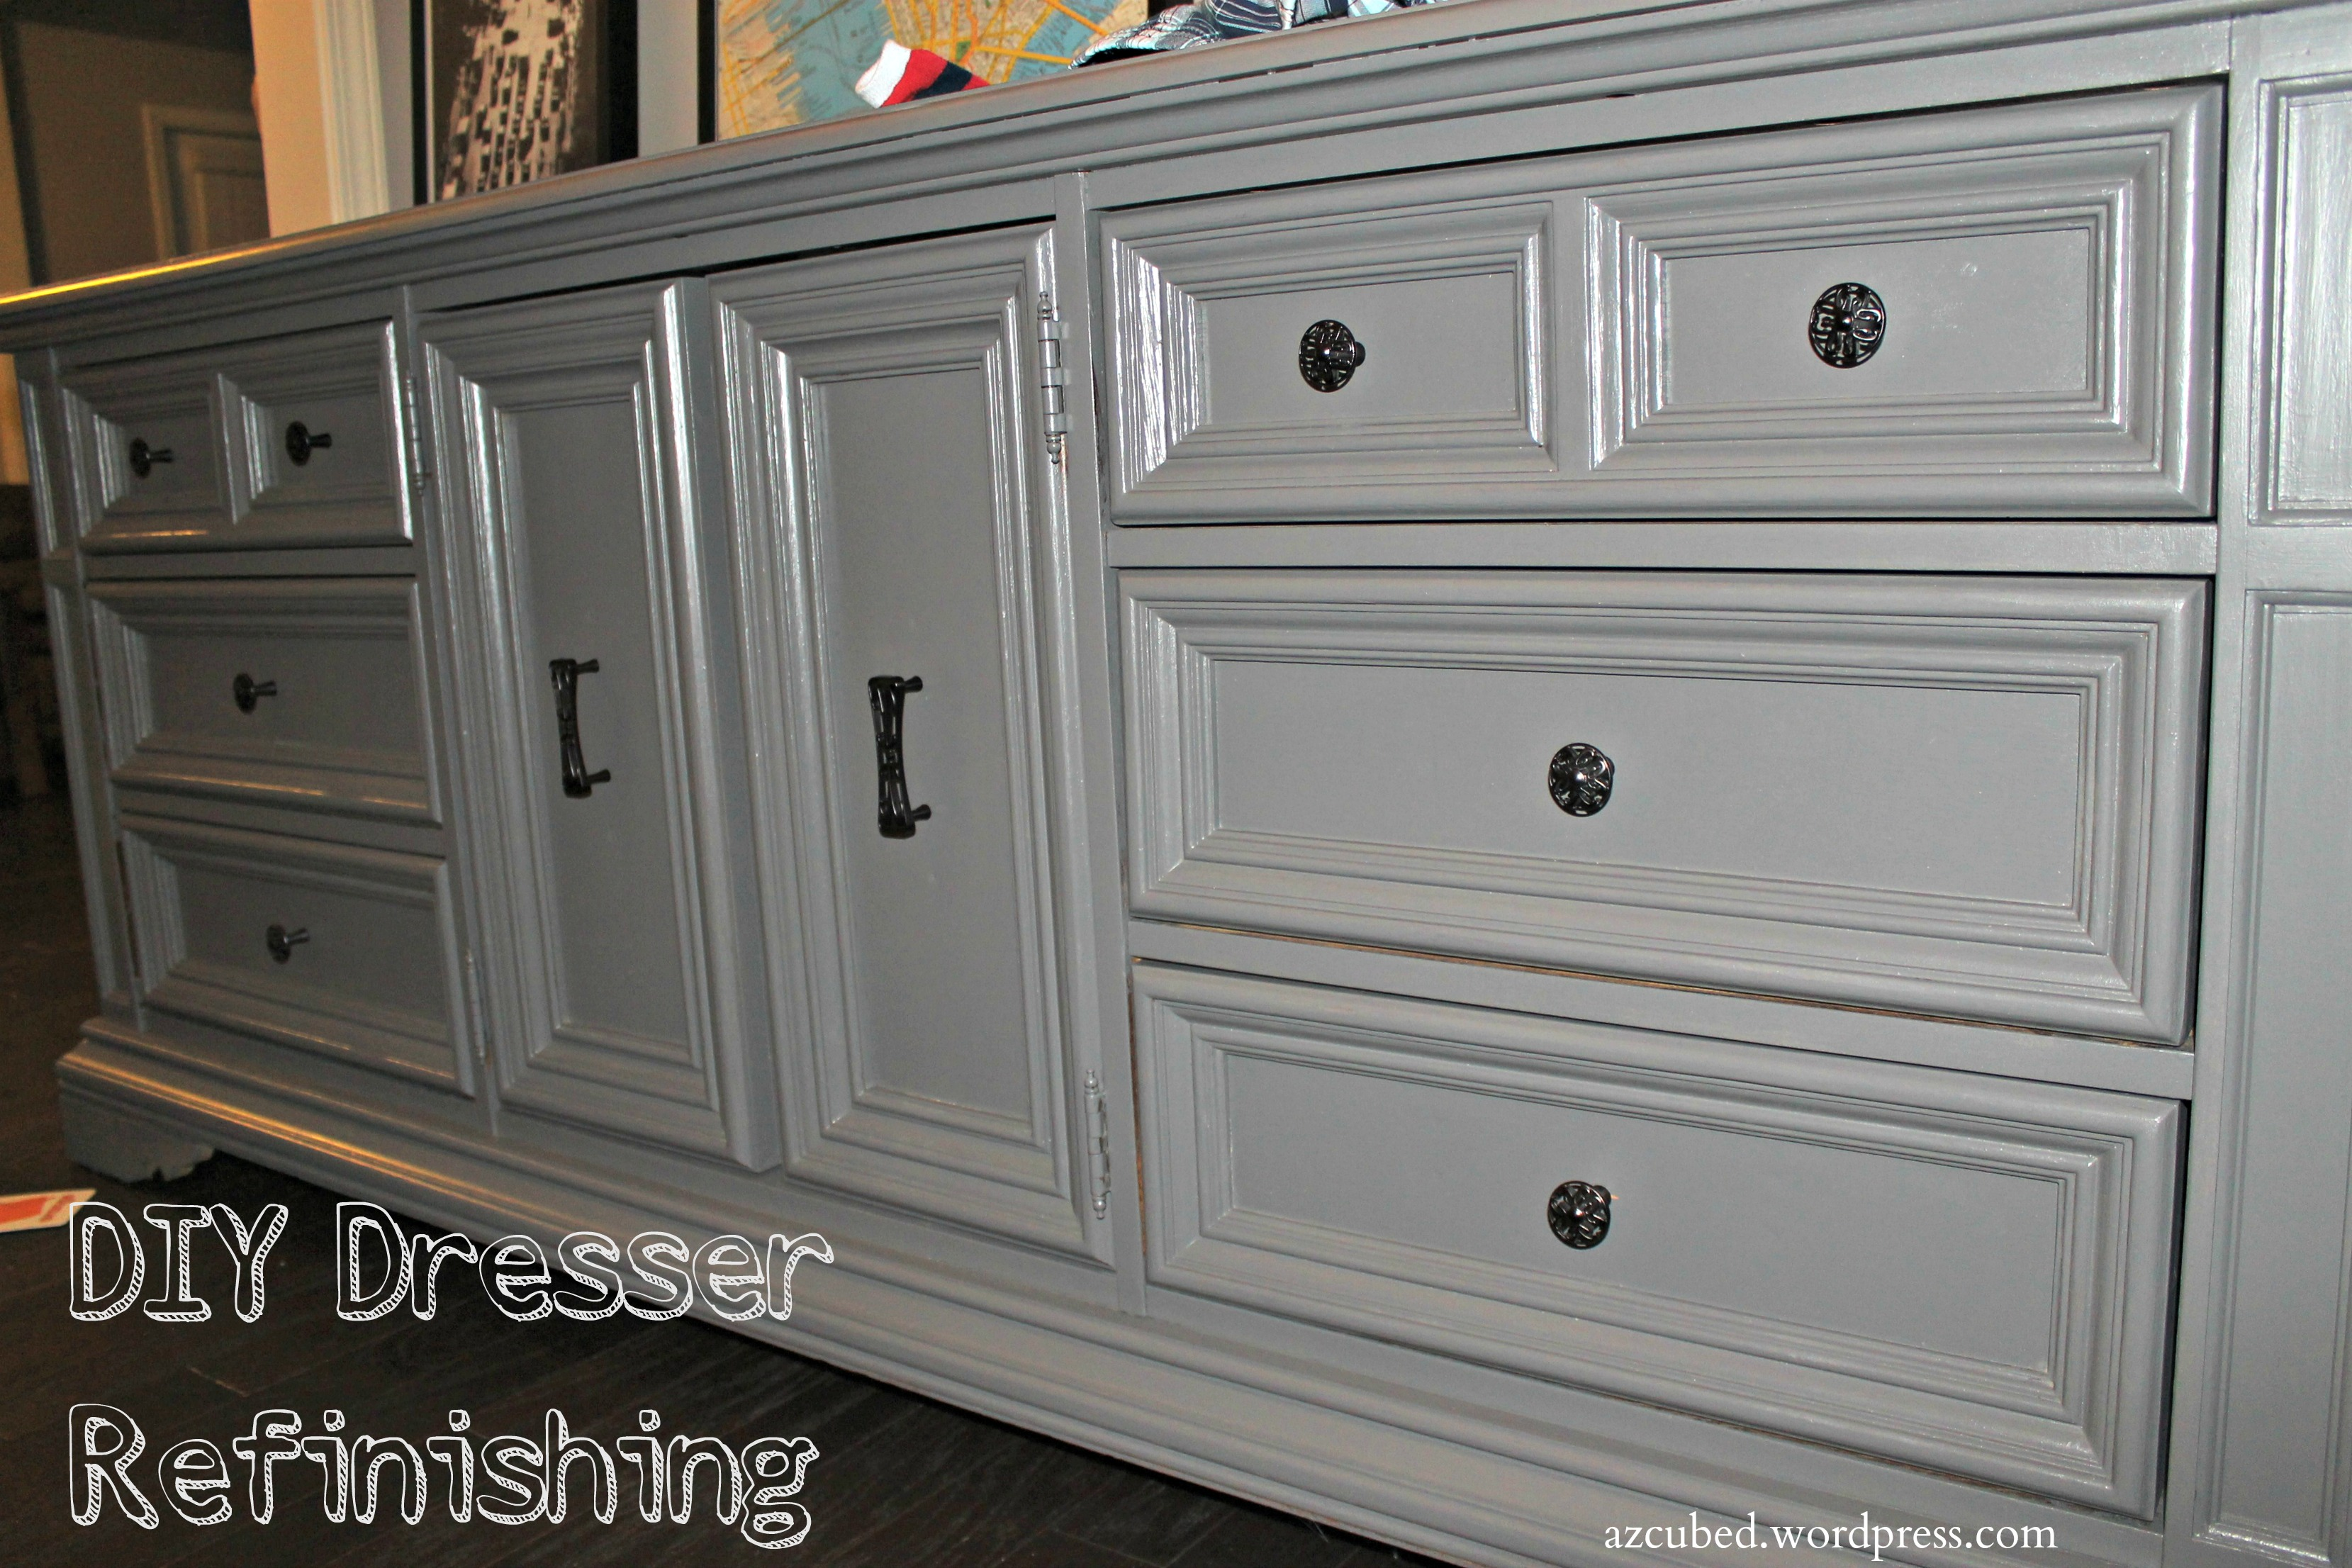 ideas amazing you at furniture dresser should refurbished home out try